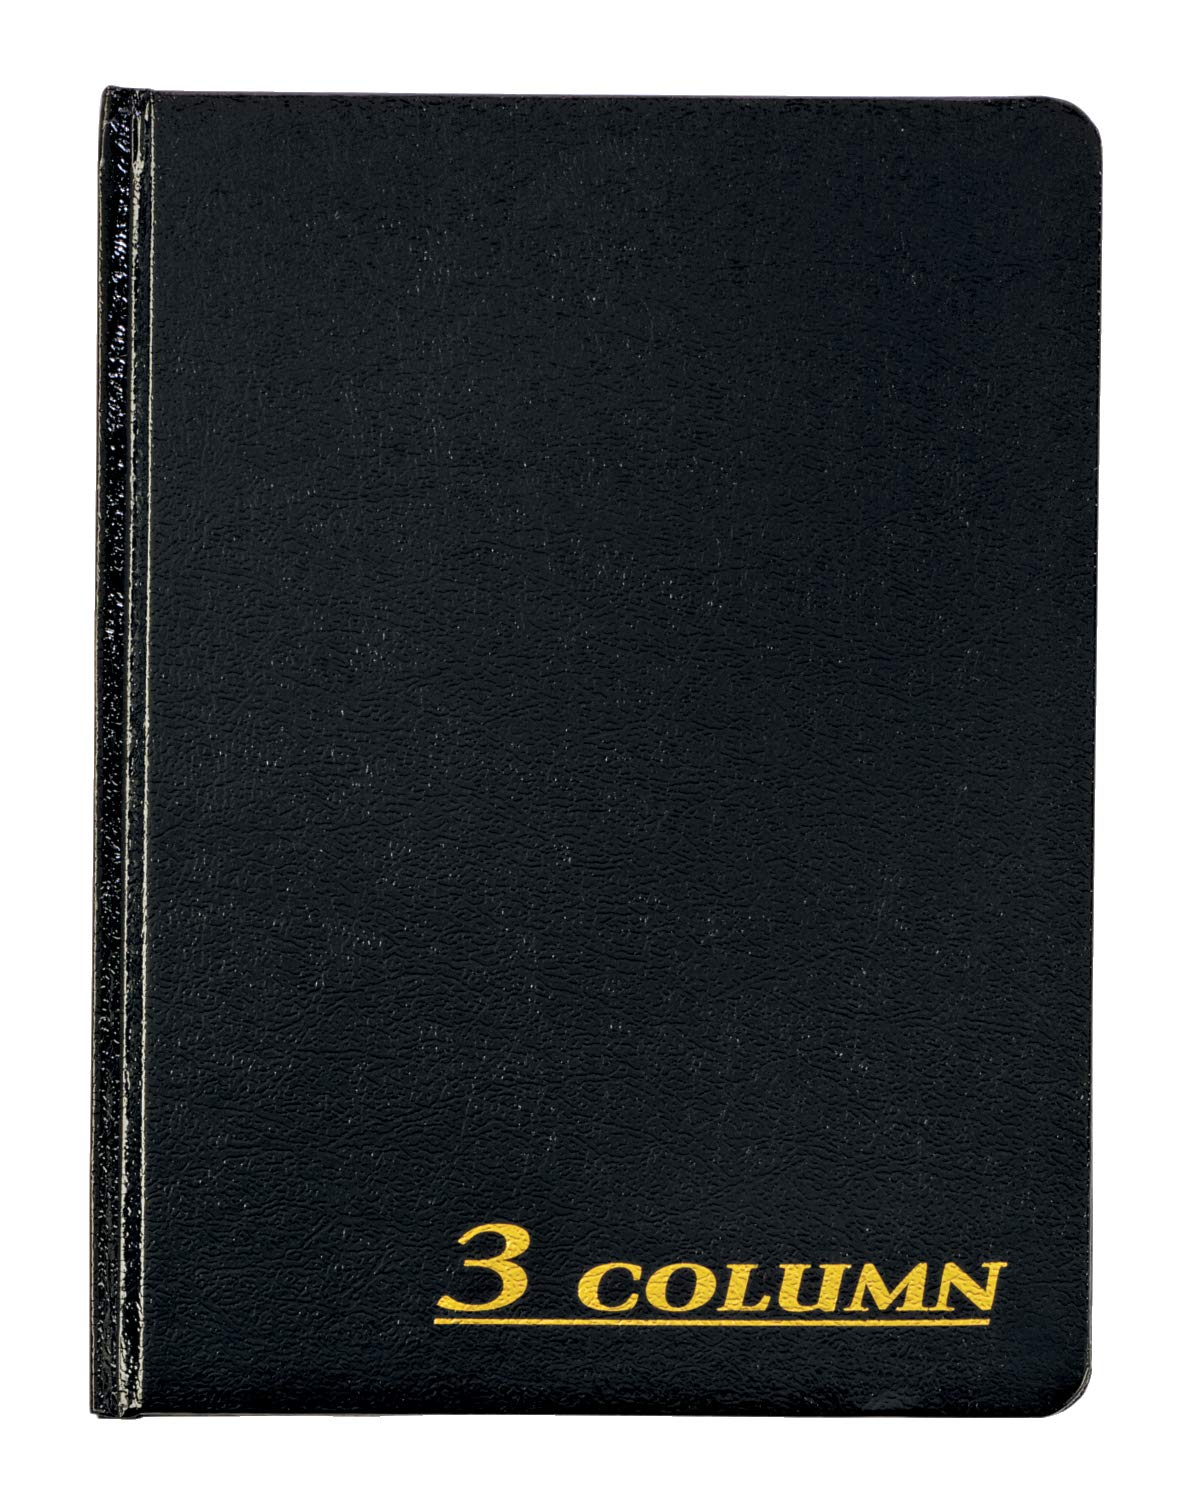 7 x 9.25 inches Black 80 Pages 3-Columns Adams Account Book ARB8003M 3 Books